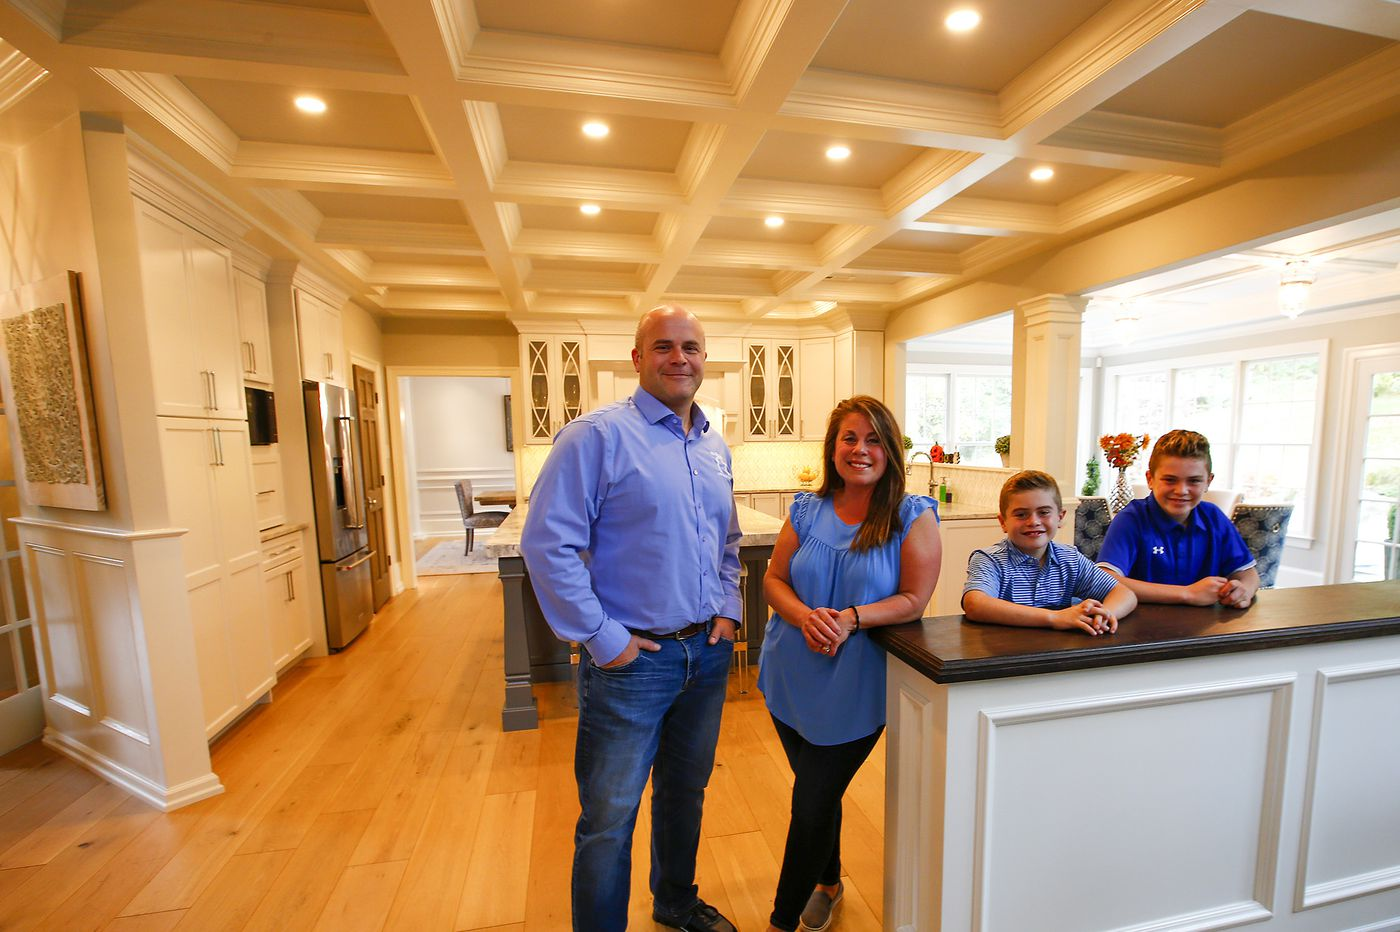 Family makes the most out of a West Chester house with potential